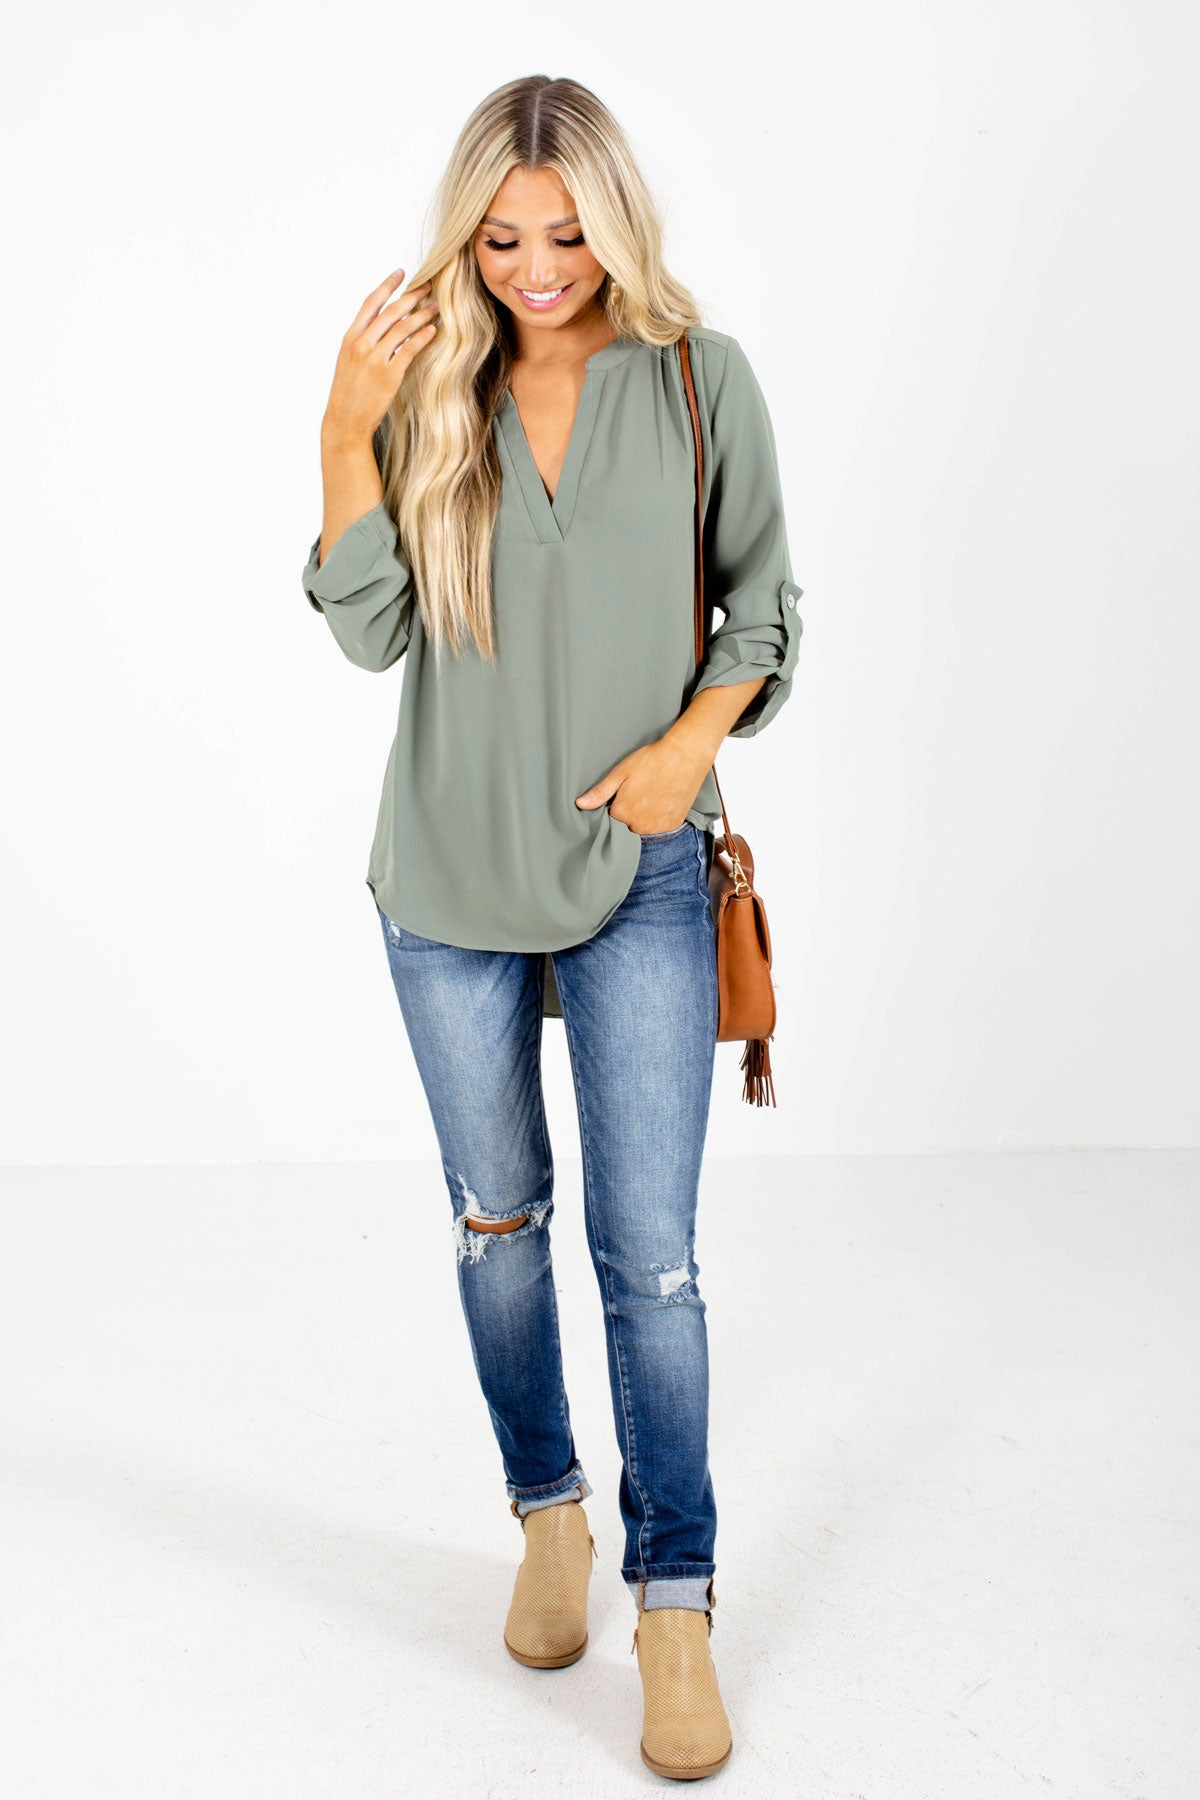 Olive Green Boutique Tops for Women